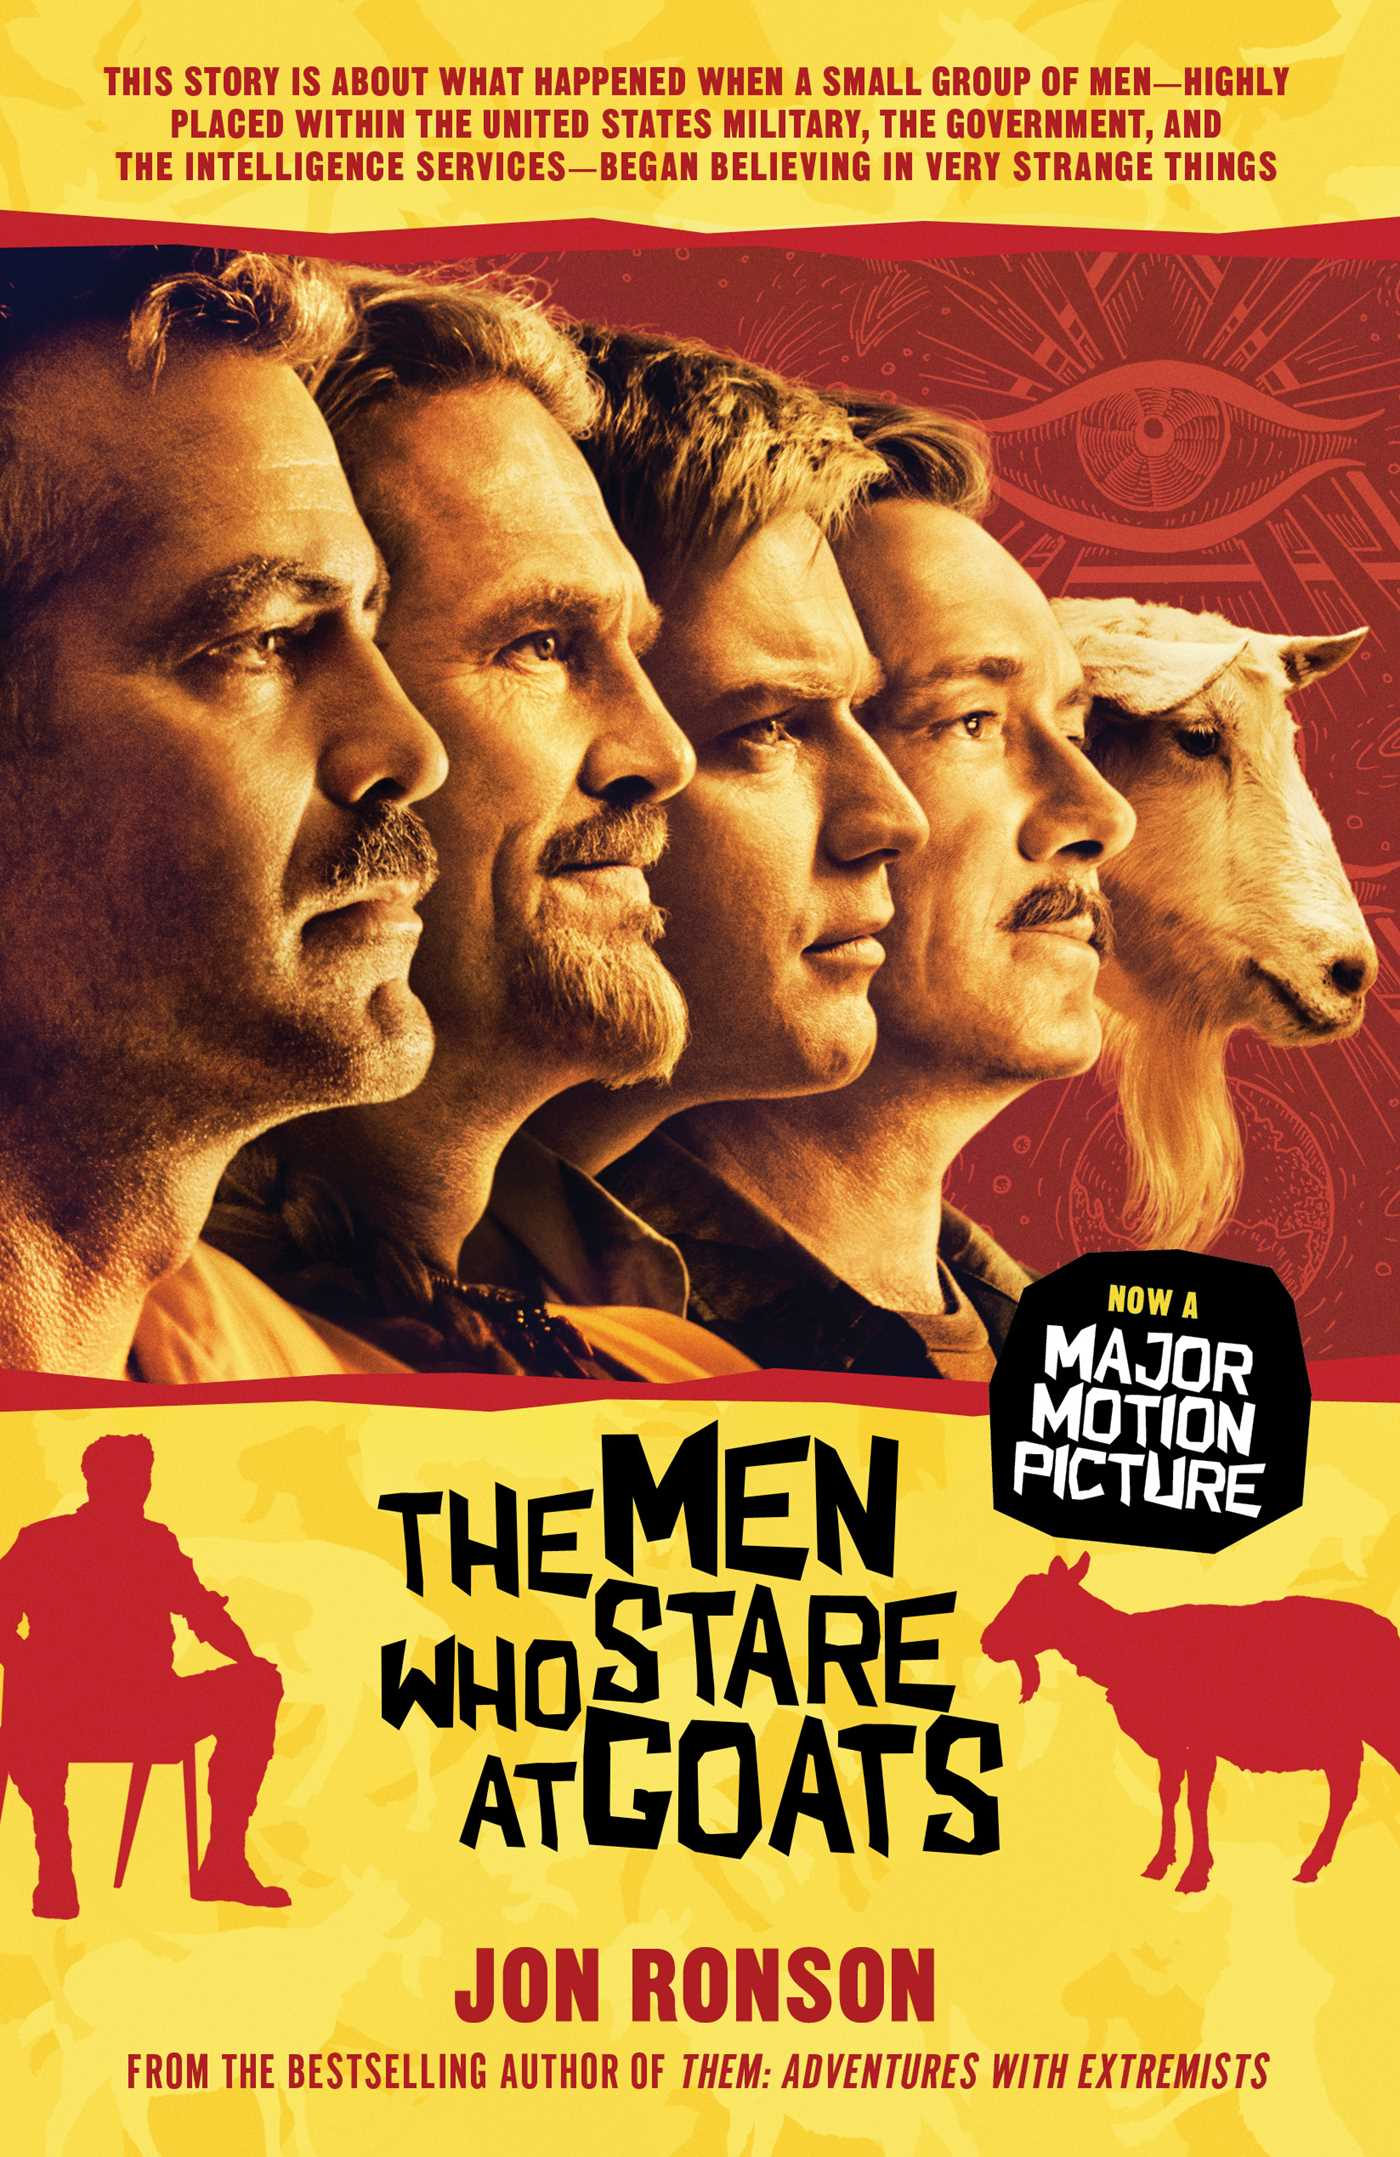 Men-who-stare-at-goats-9781451665970_hr